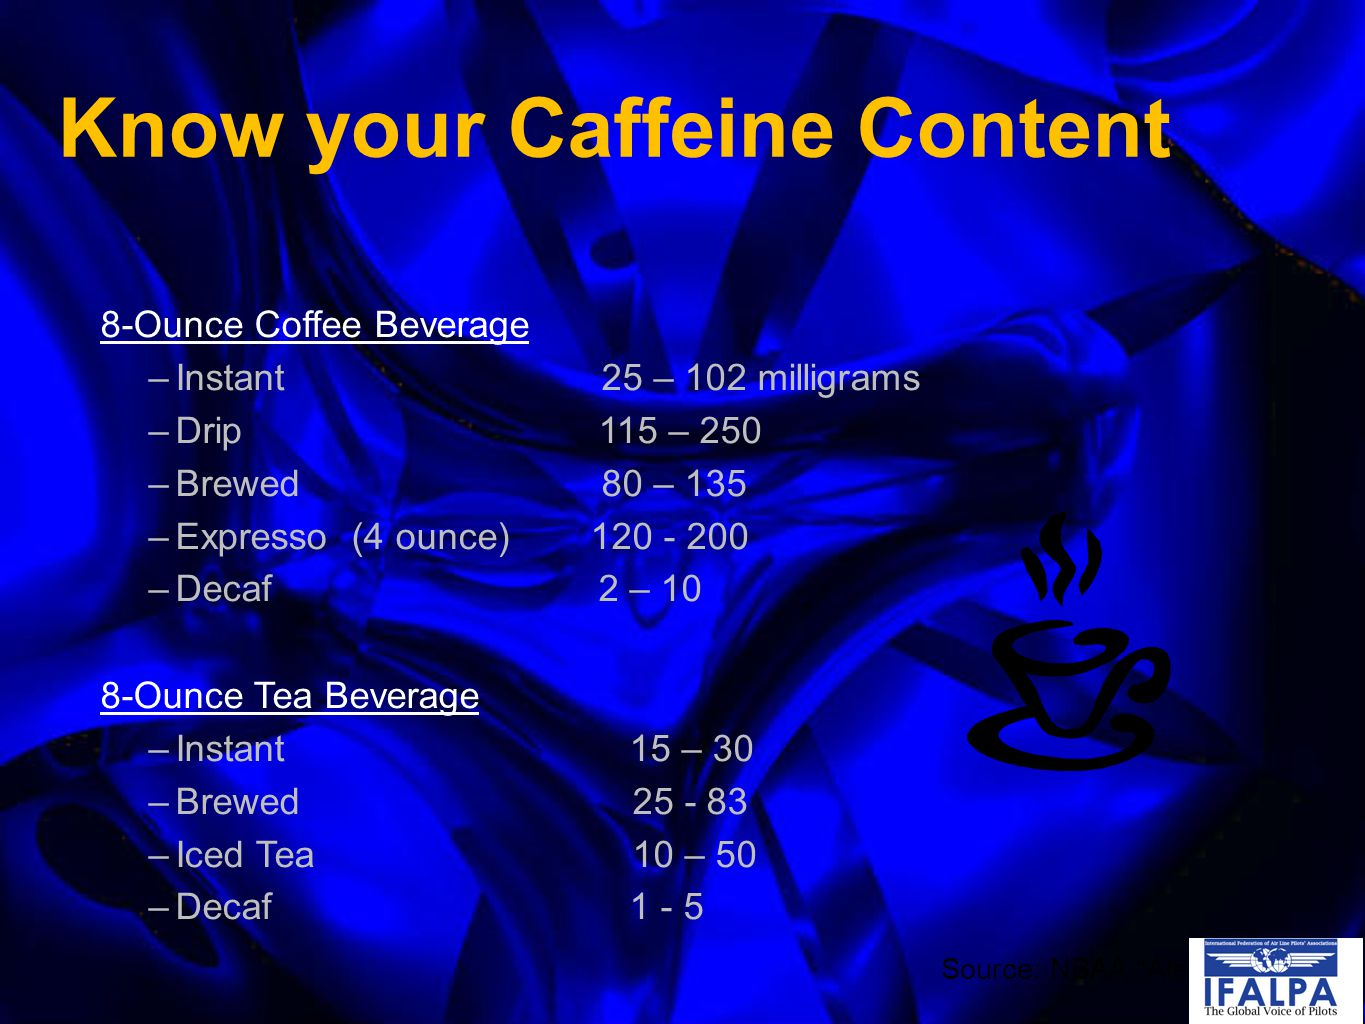 Know your Caffeine Content 8-Ounce Coffee Beverage –Instant 25 – 102 milligrams –Drip 115 – 250 –Brewed 80 – 135 –Expresso (4 ounce) 120 - 200 –Decaf 2 – 10 8-Ounce Tea Beverage –Instant 15 – 30 –Brewed 25 - 83 –Iced Tea 10 – 50 –Decaf 1 - 5 Source: NBAA Alert Traveler